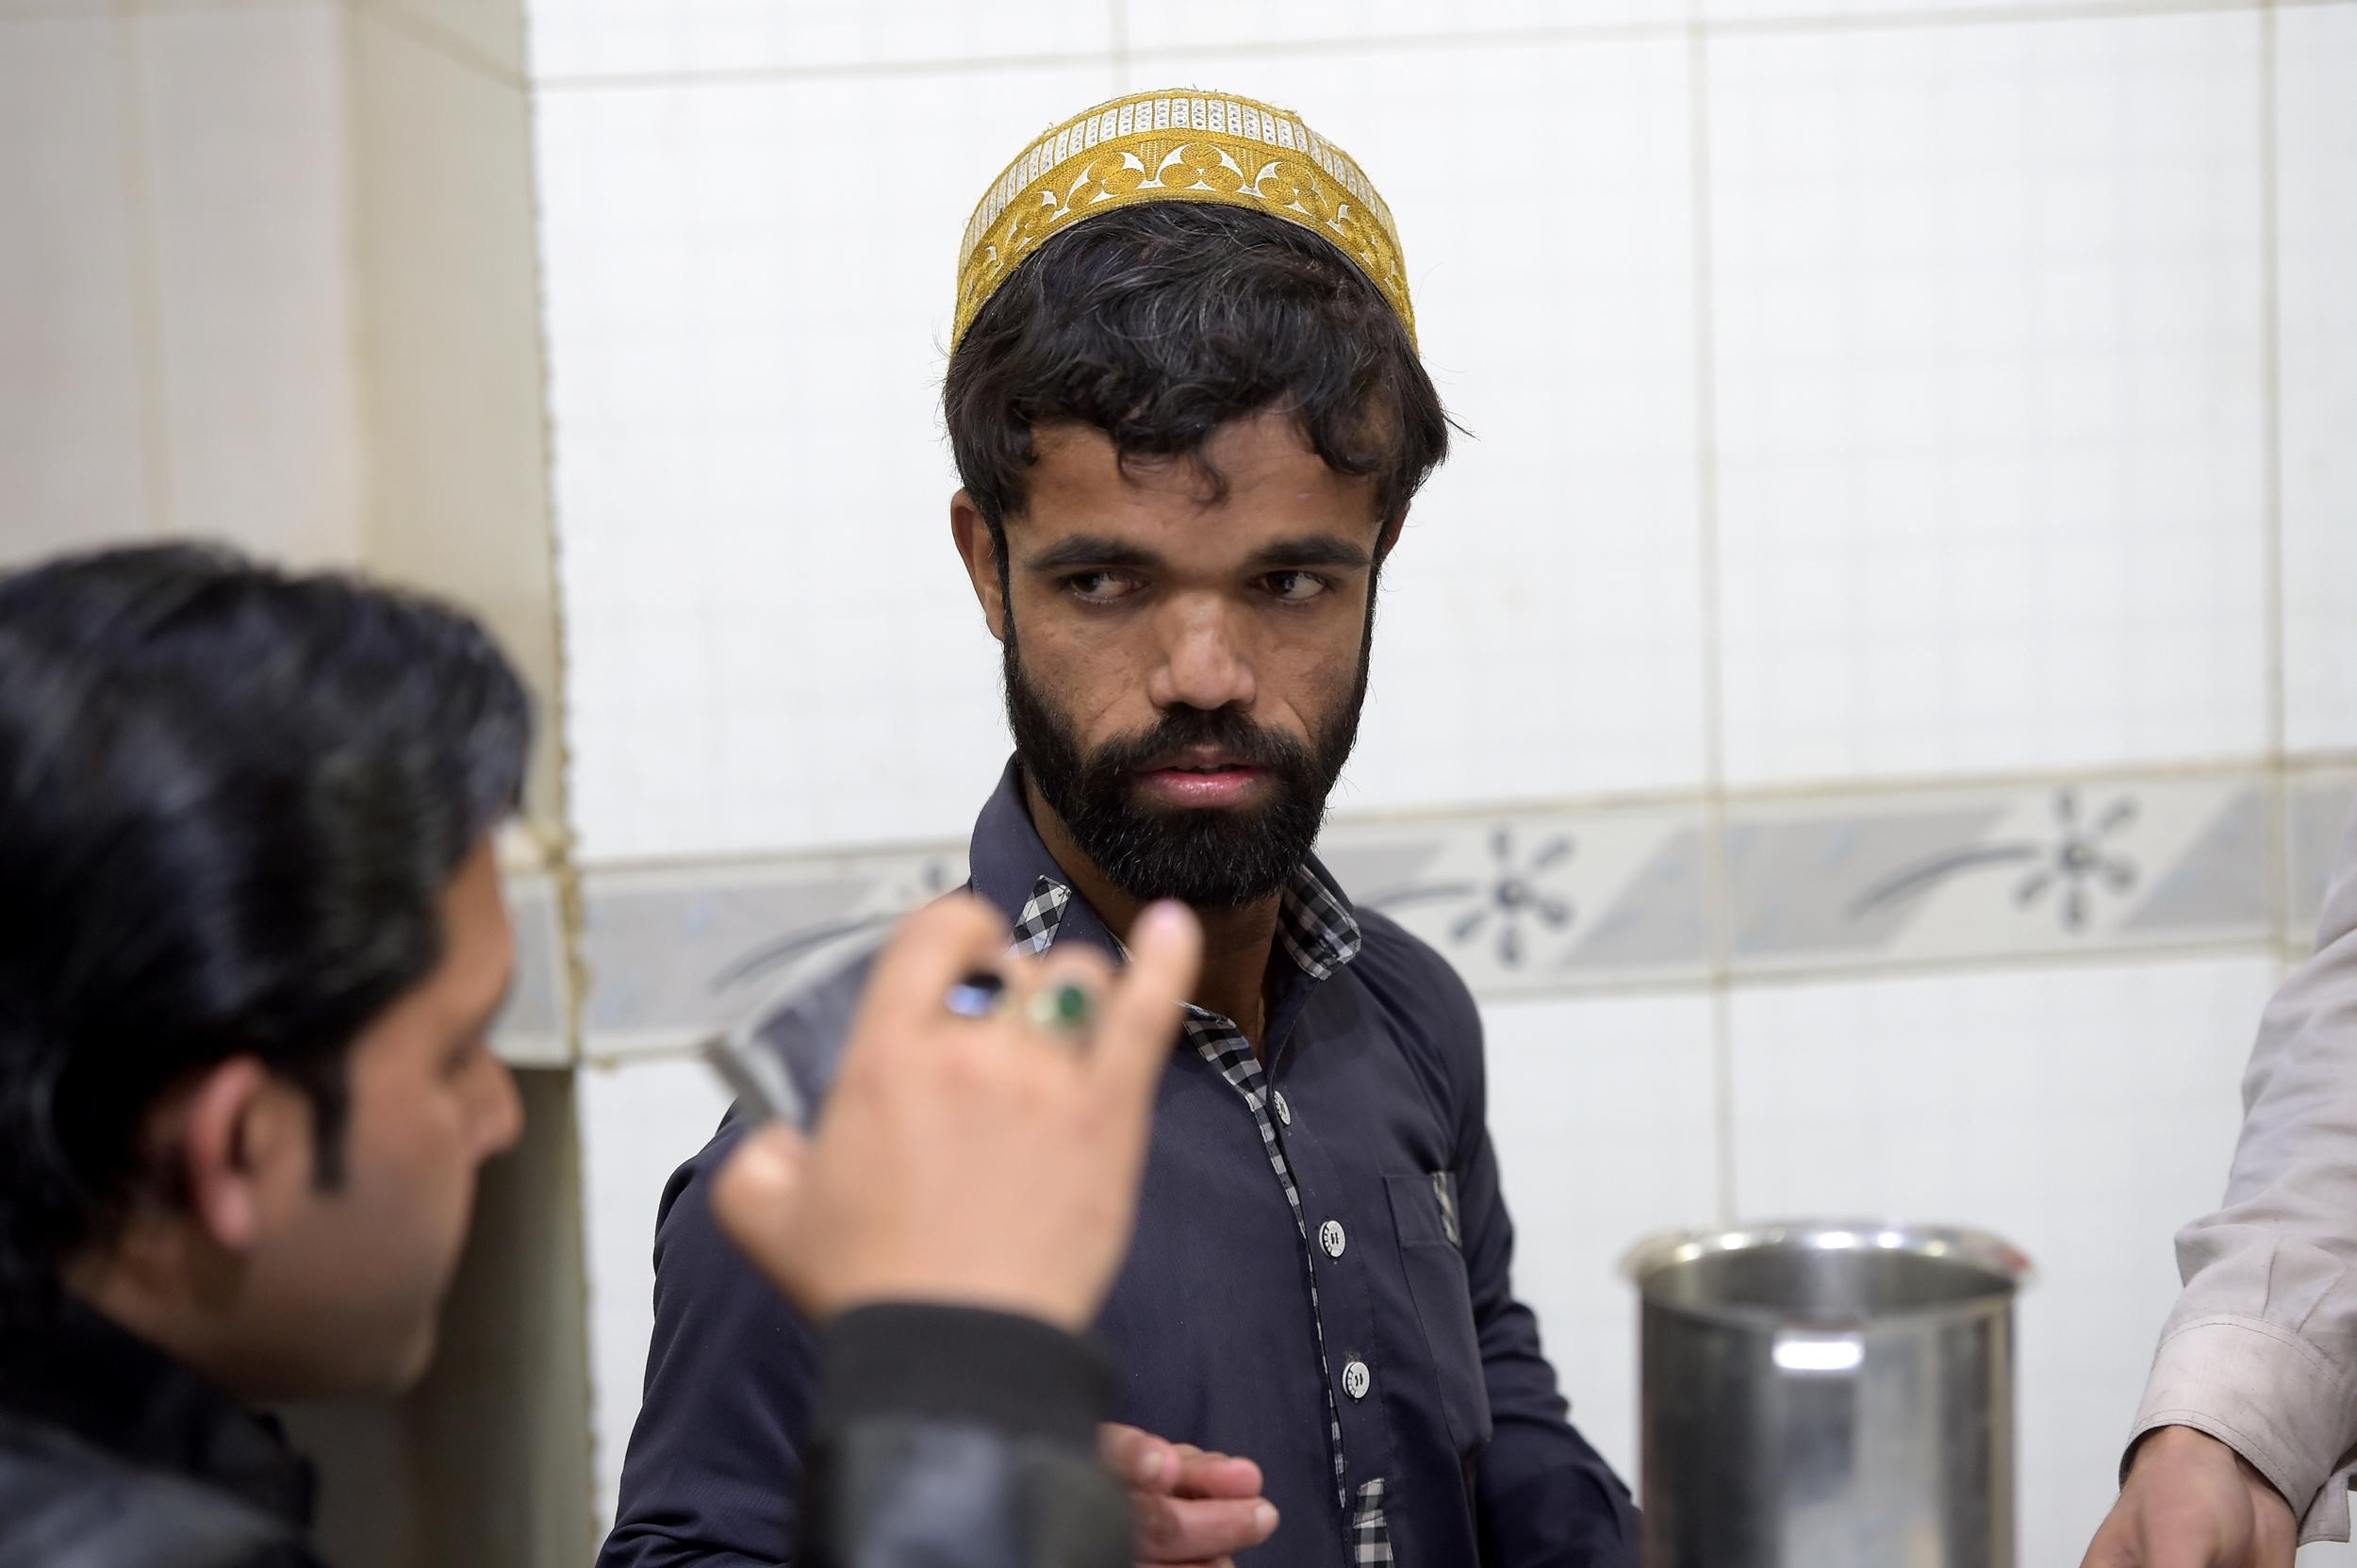 In this picture taken on February 22, 2019, Rozi Khan (R), a 25-year-old Pakistani waiter who resembles US actor Peter Dinklage, works at Dilbar Hotel in Rawalpindi. - Rozi Khan had never heard of the Game of Thrones -- or its hugely popular character Tyrion Lannister -- until his striking resemblance to the dwarf anti-hero got heads turning at home. (Photo by AAMIR QURESHI / AFP) / To go with PAKISTAN-LIFESTYLE-TELEVISION-ENTERTAINMENT        (Photo credit should read AAMIR QURESHI/AFP/Getty Images)